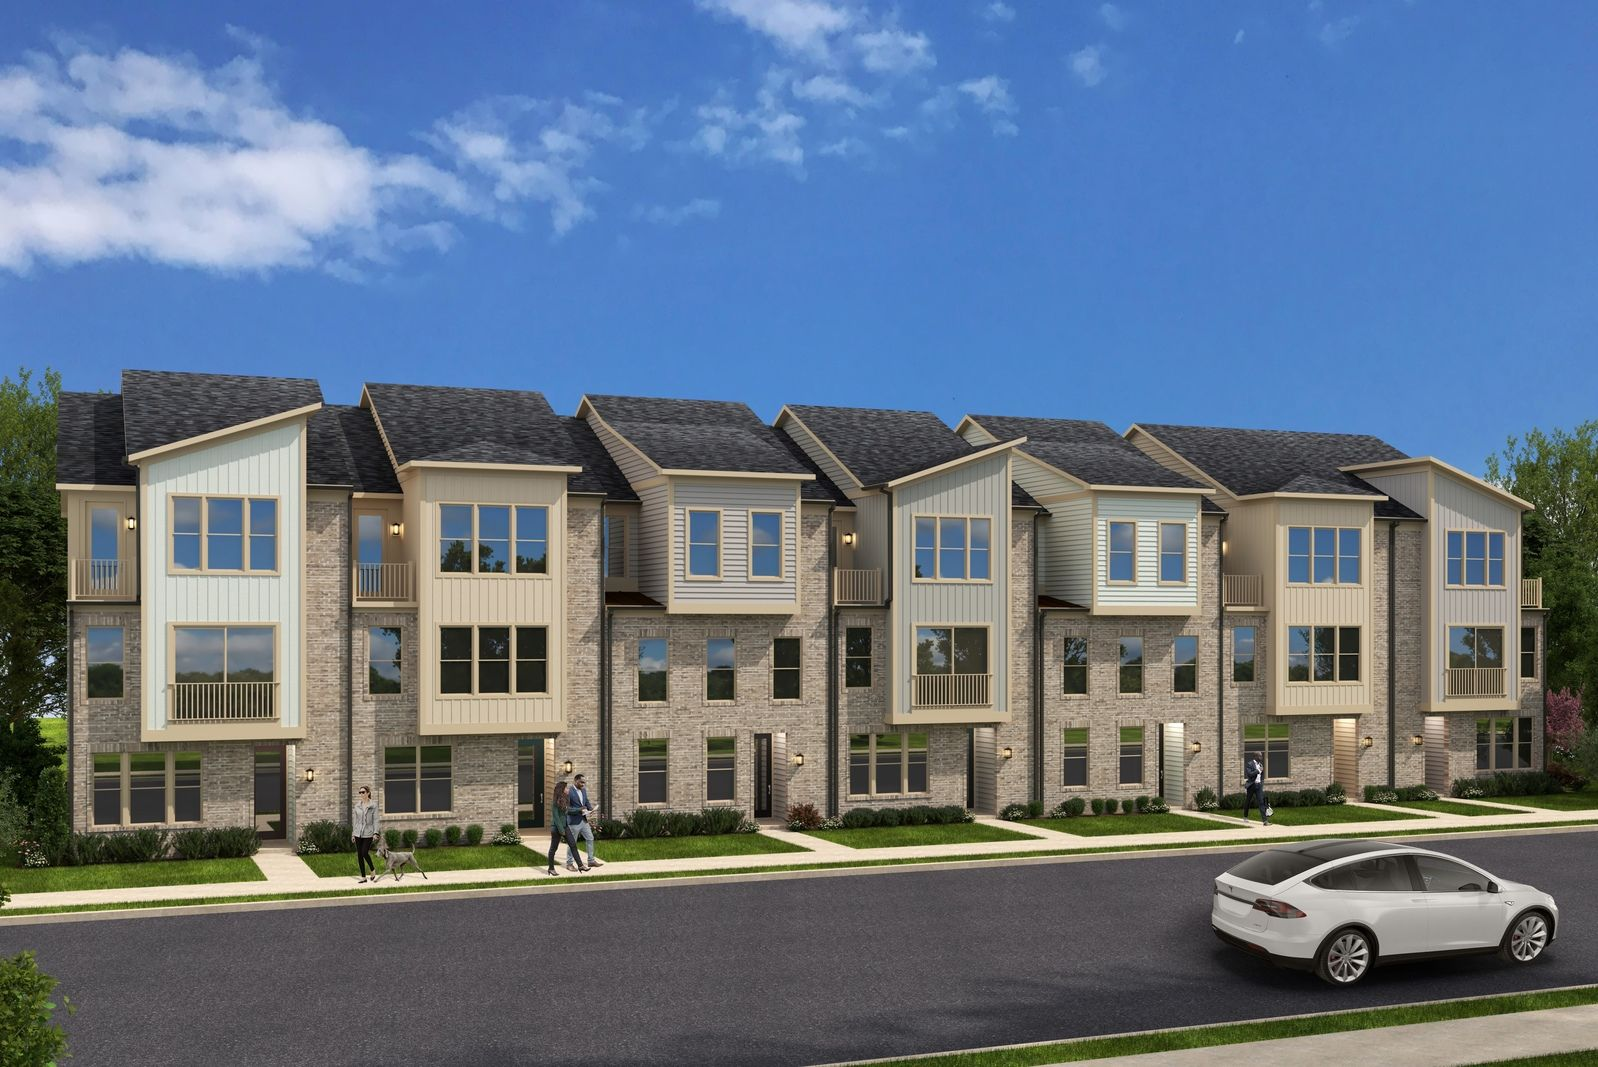 Sophisticated Townhomes in Sought-After Laurel:Introducing a private enclave of luxurious new townhomes in a pristine Laurel location, surrounded by trees and onsite amenities.Join our VIP list for the very best pricing and selection.